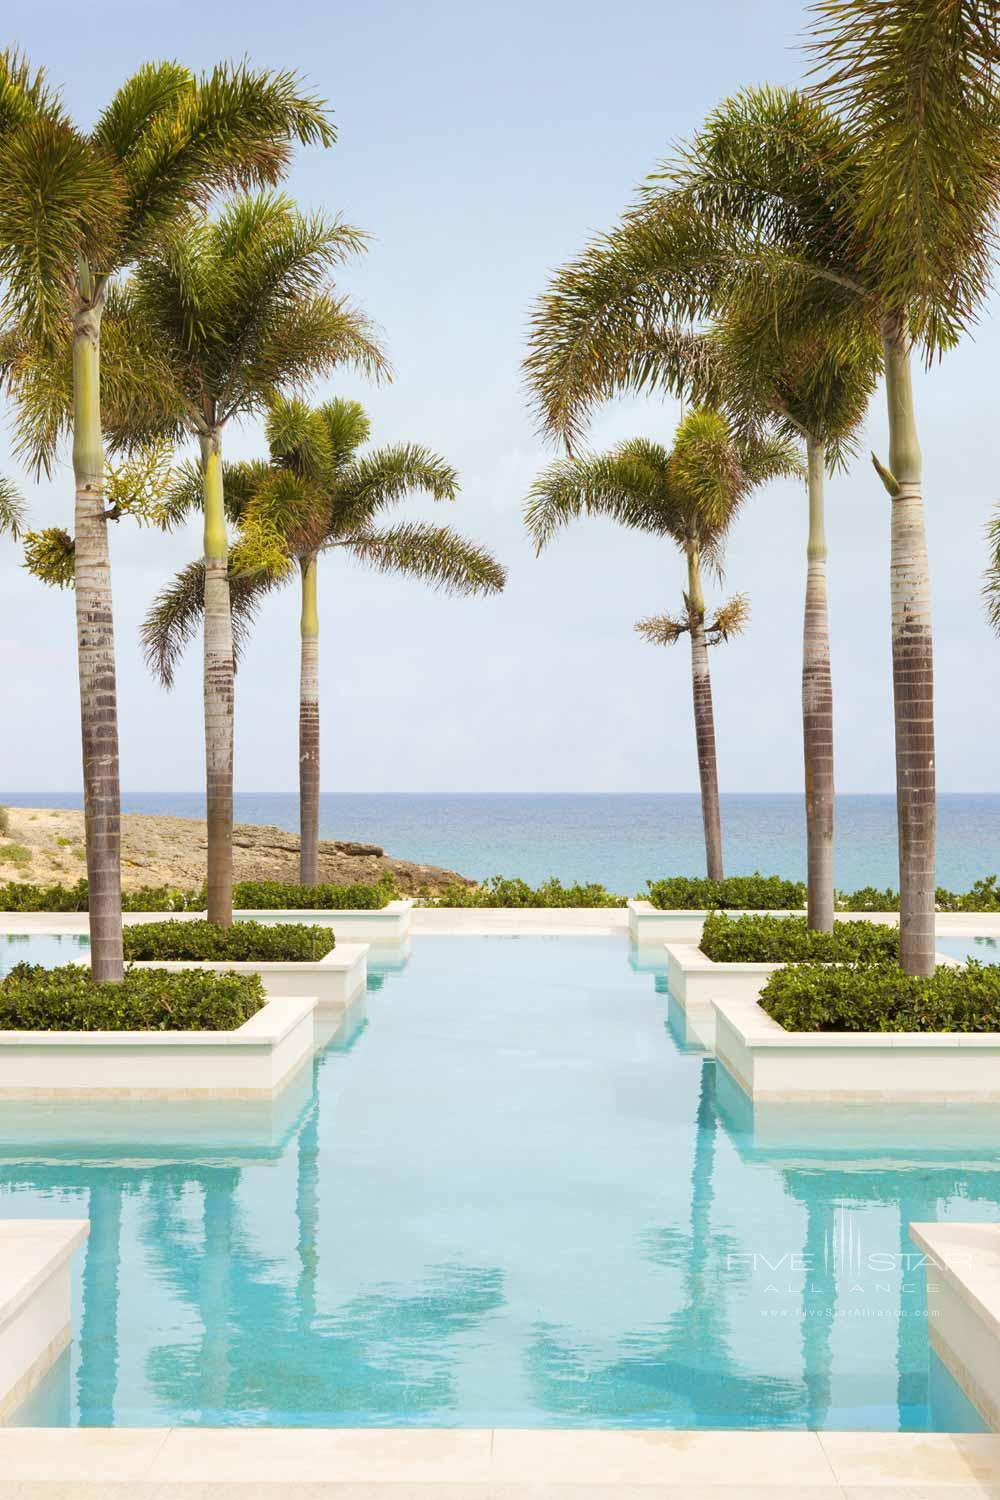 Outdoor Pool at Four Seasons Resort AnguillaBarnes BayAnguilla